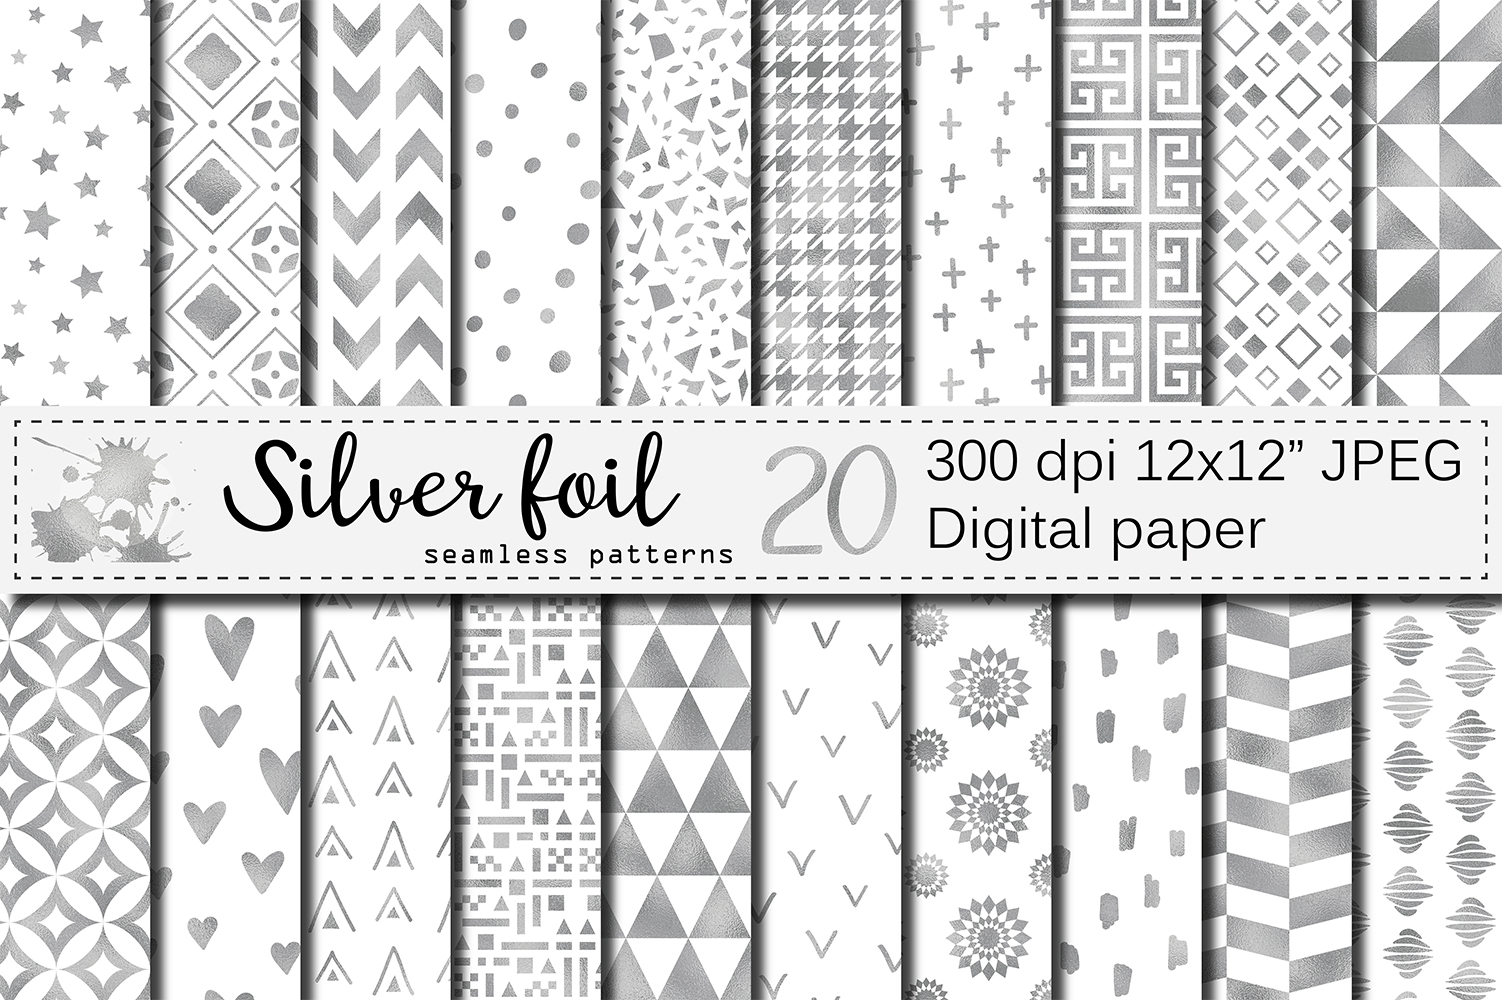 Silver Foil Seamless Geometric Patterns Graphic By Vr Digital